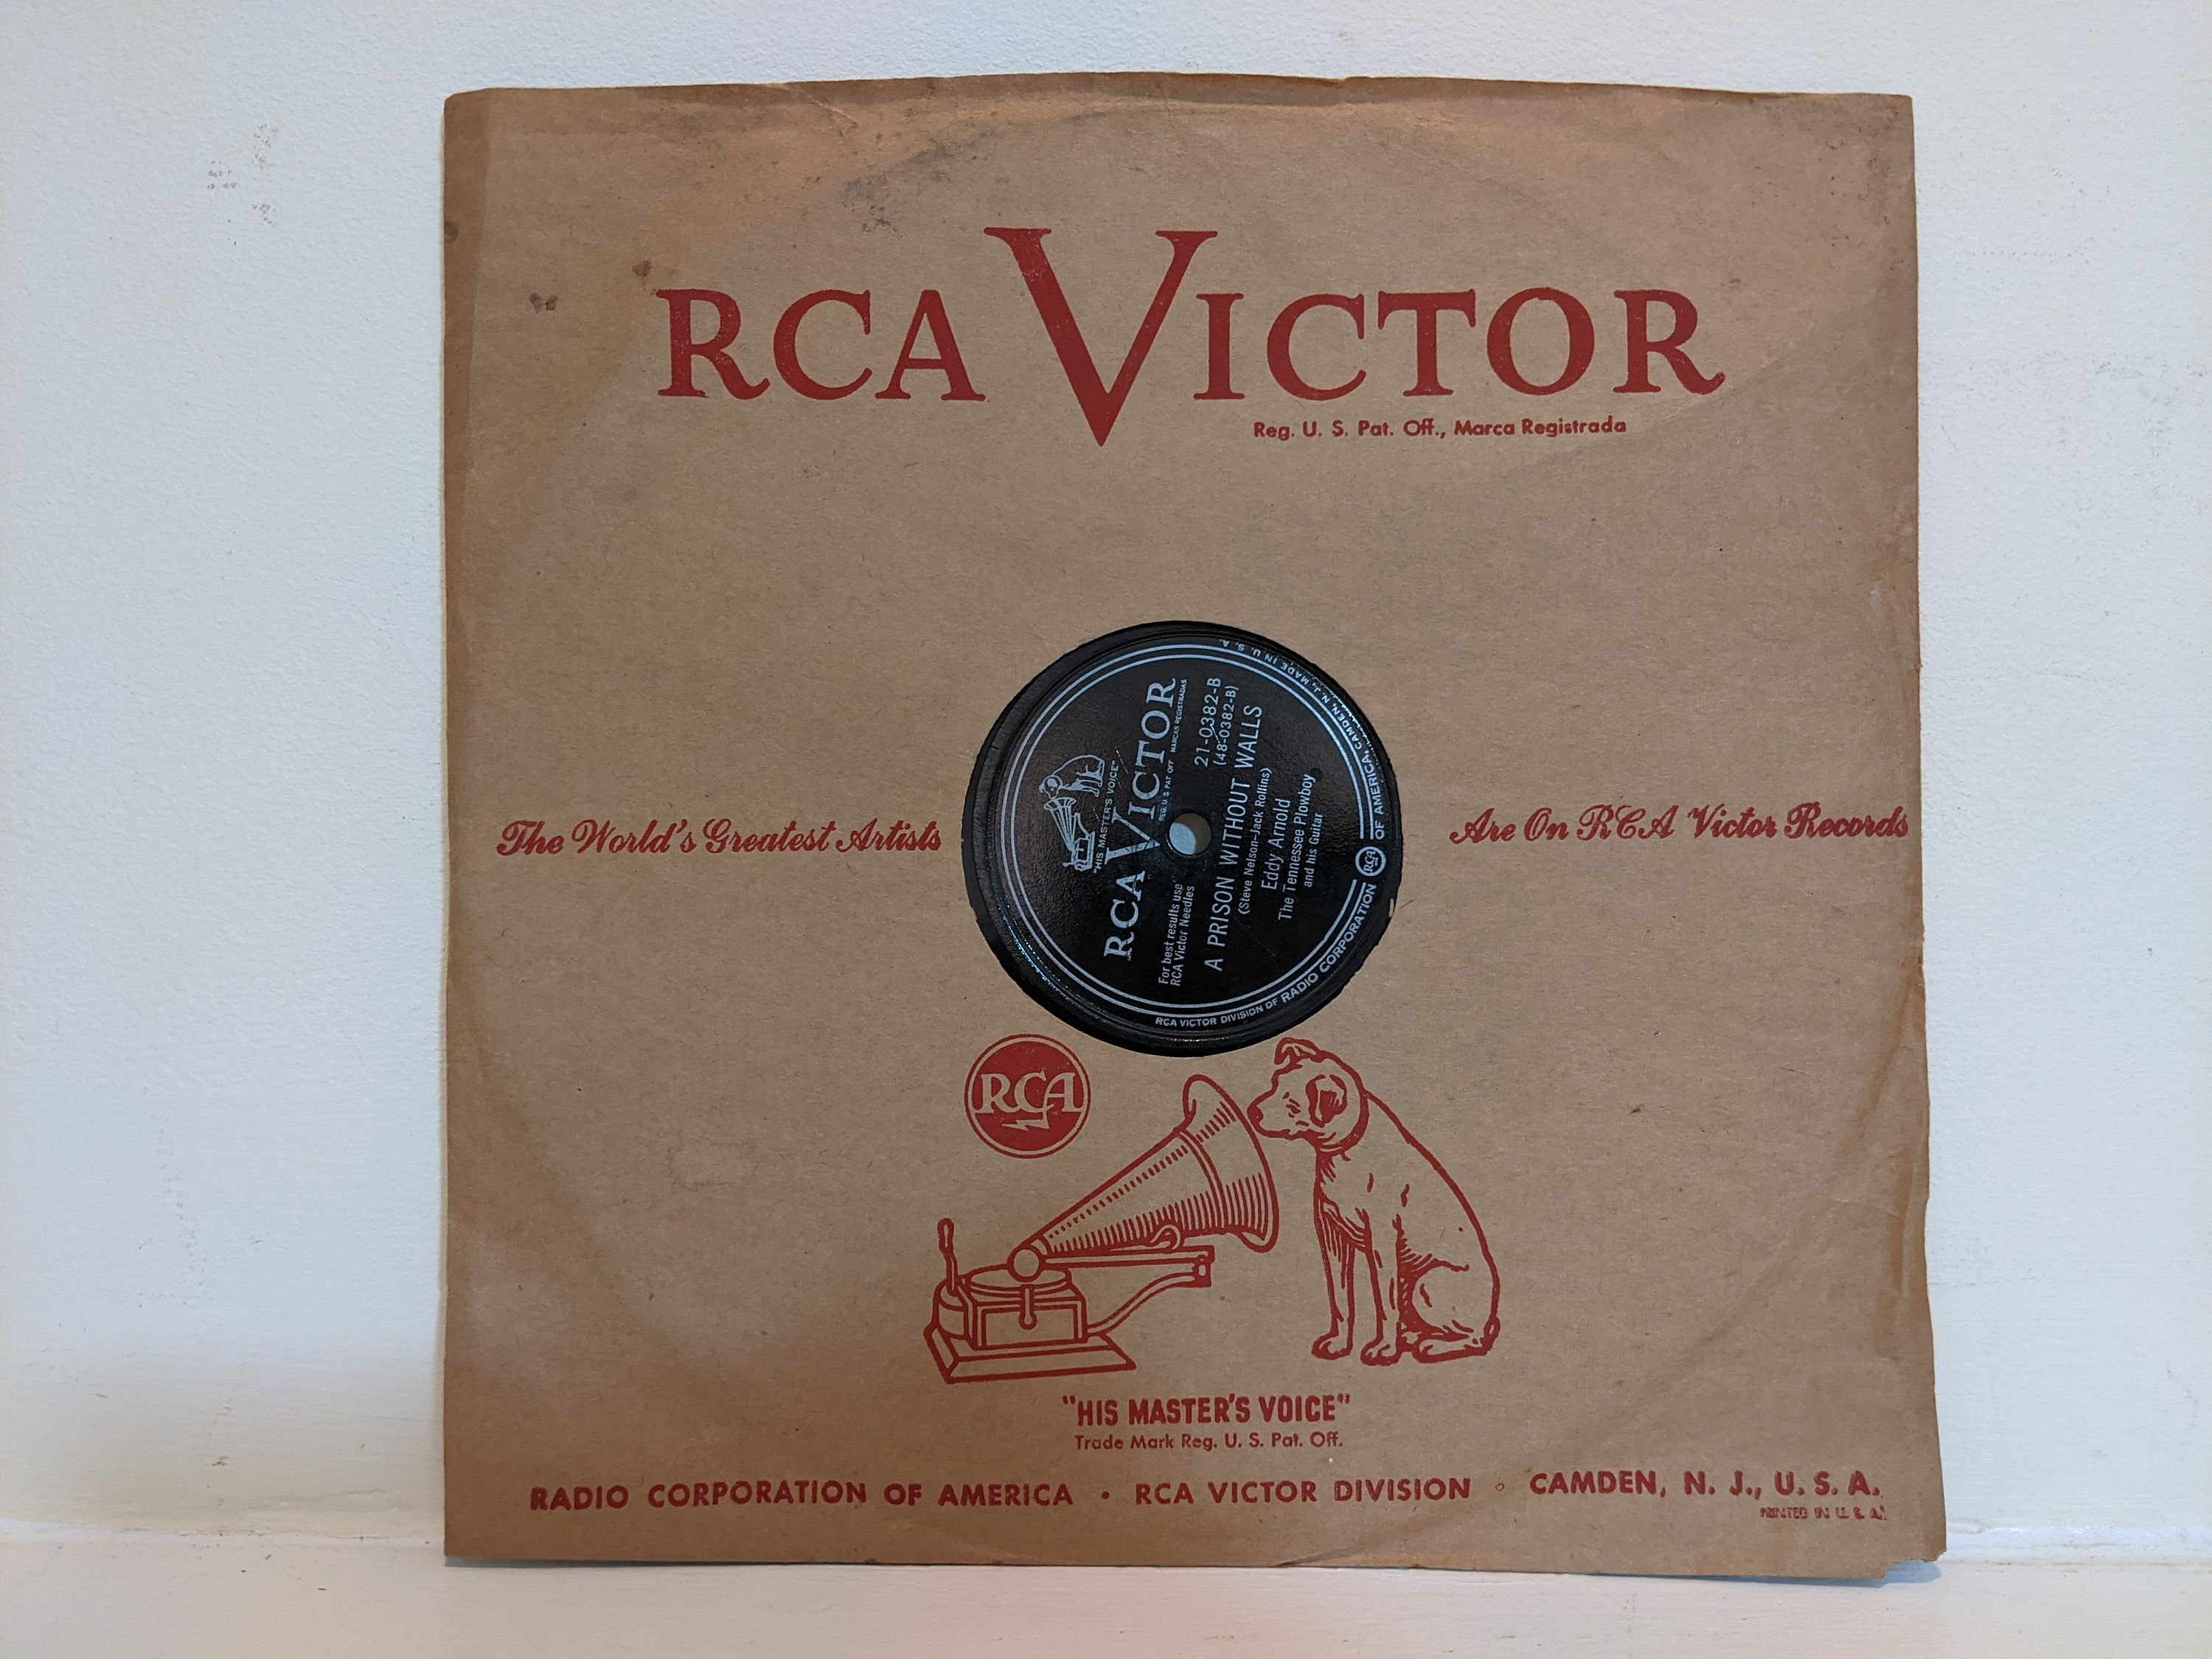 1950 RCA Victor Records Eddy Arnold -The Lovebug Itch 21-0382 A Prison Without Walls